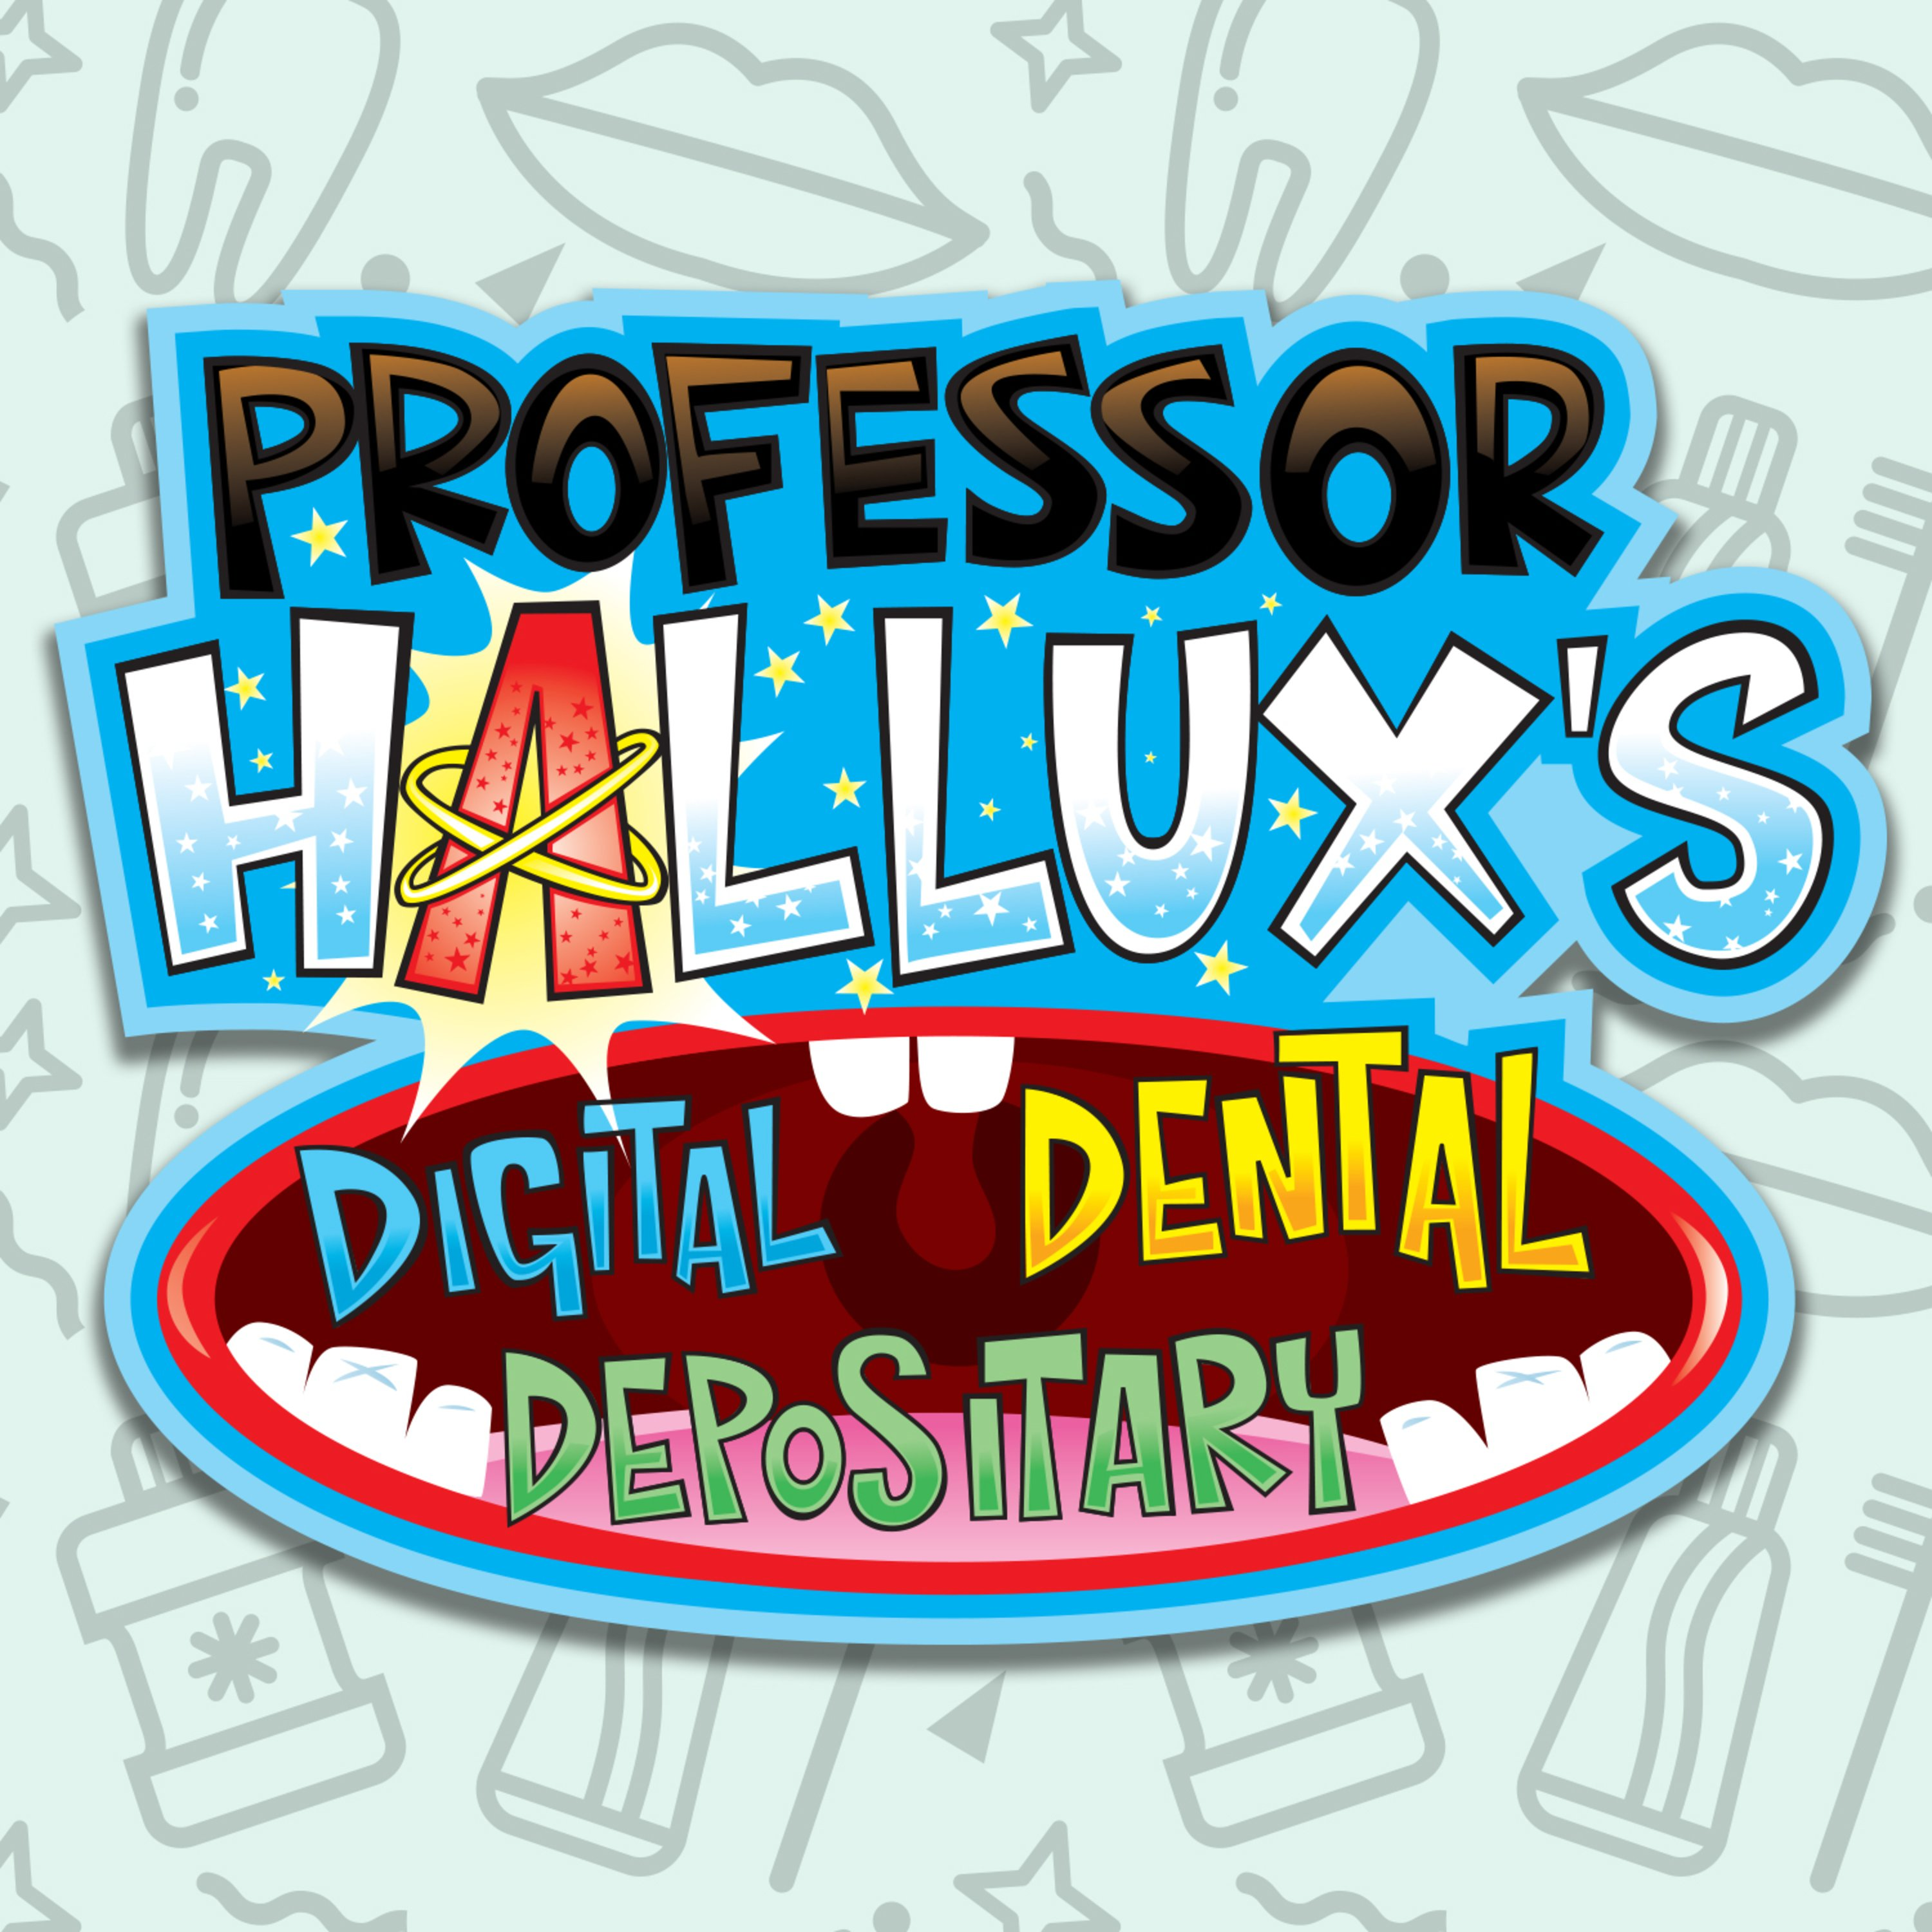 What happens during a trip to the dentist? (Digital Dental Depositary)